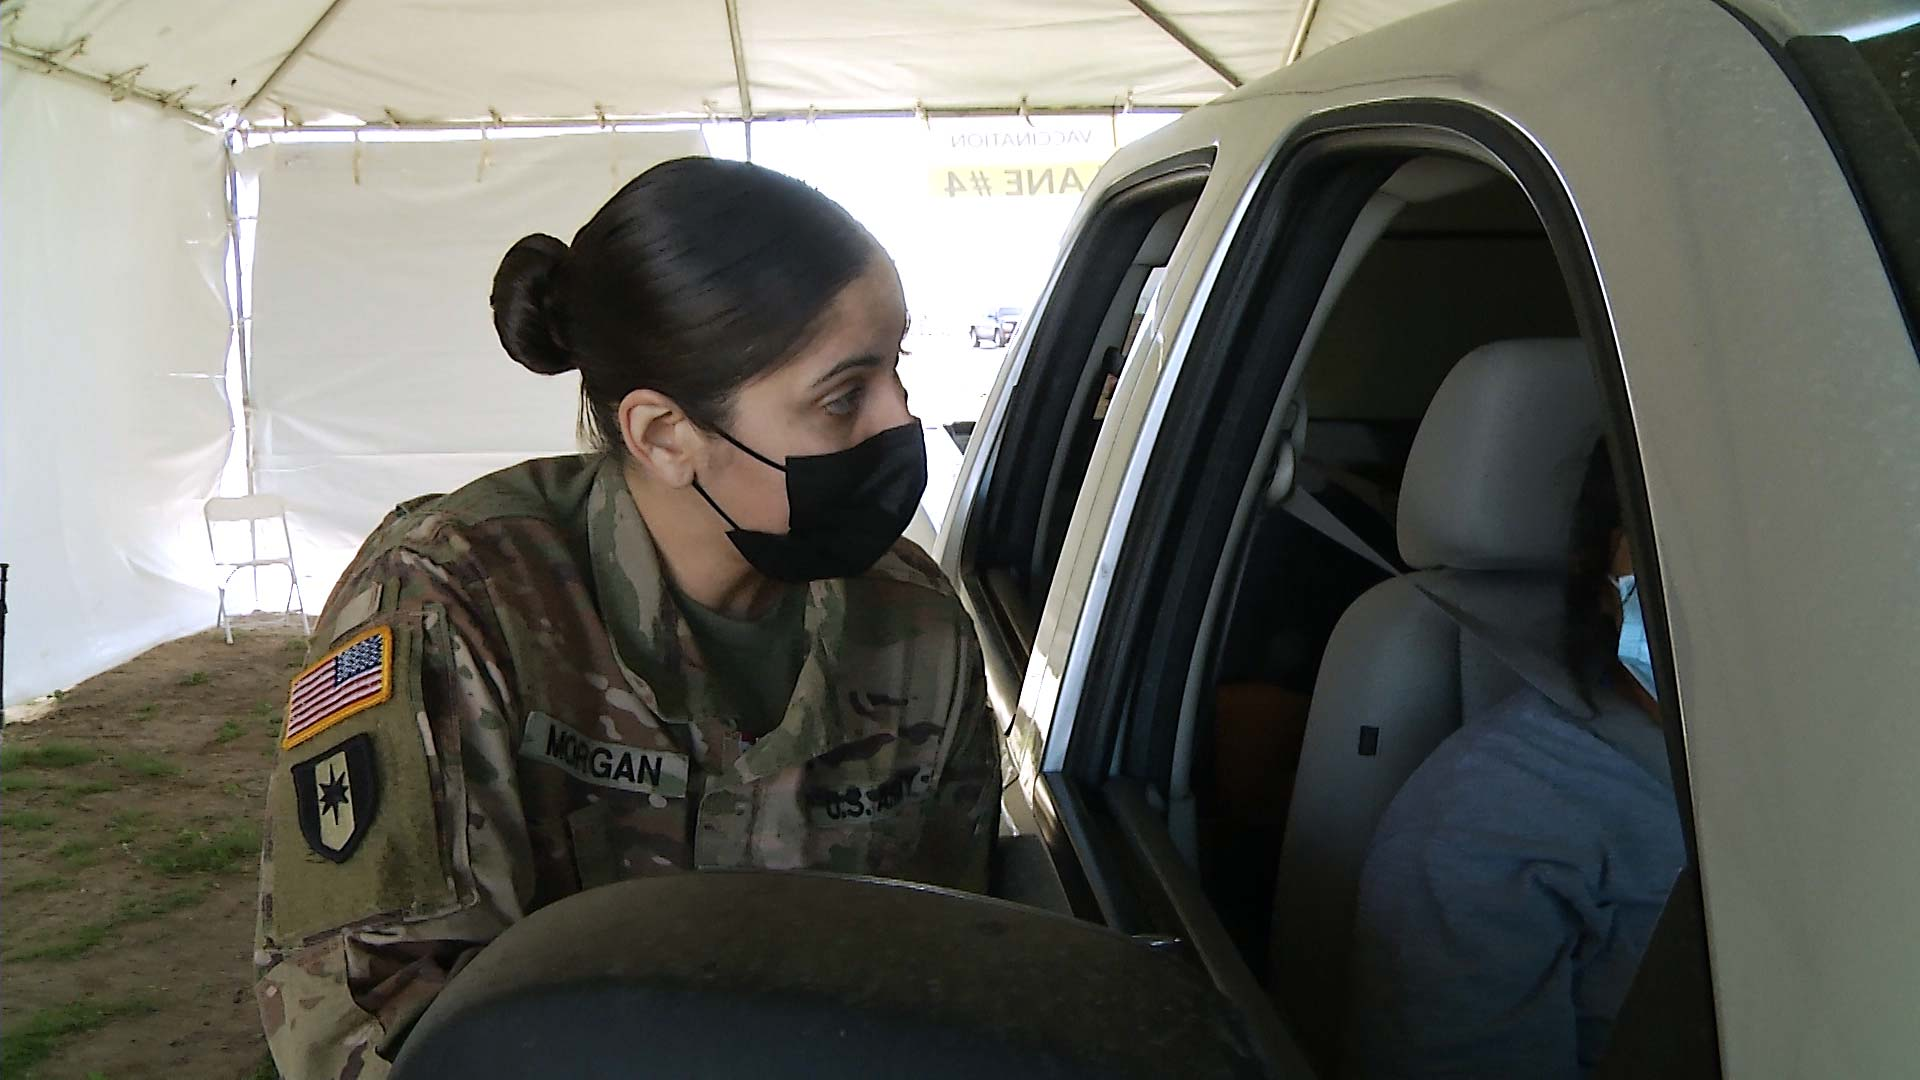 A member of the Arizona National Guard speaks to a COVID-19 vaccine recipient at a vaccination event at Wild Horse Pass Motorsports Park on the Gila River Indian Reservation on Feb. 20, 2021.